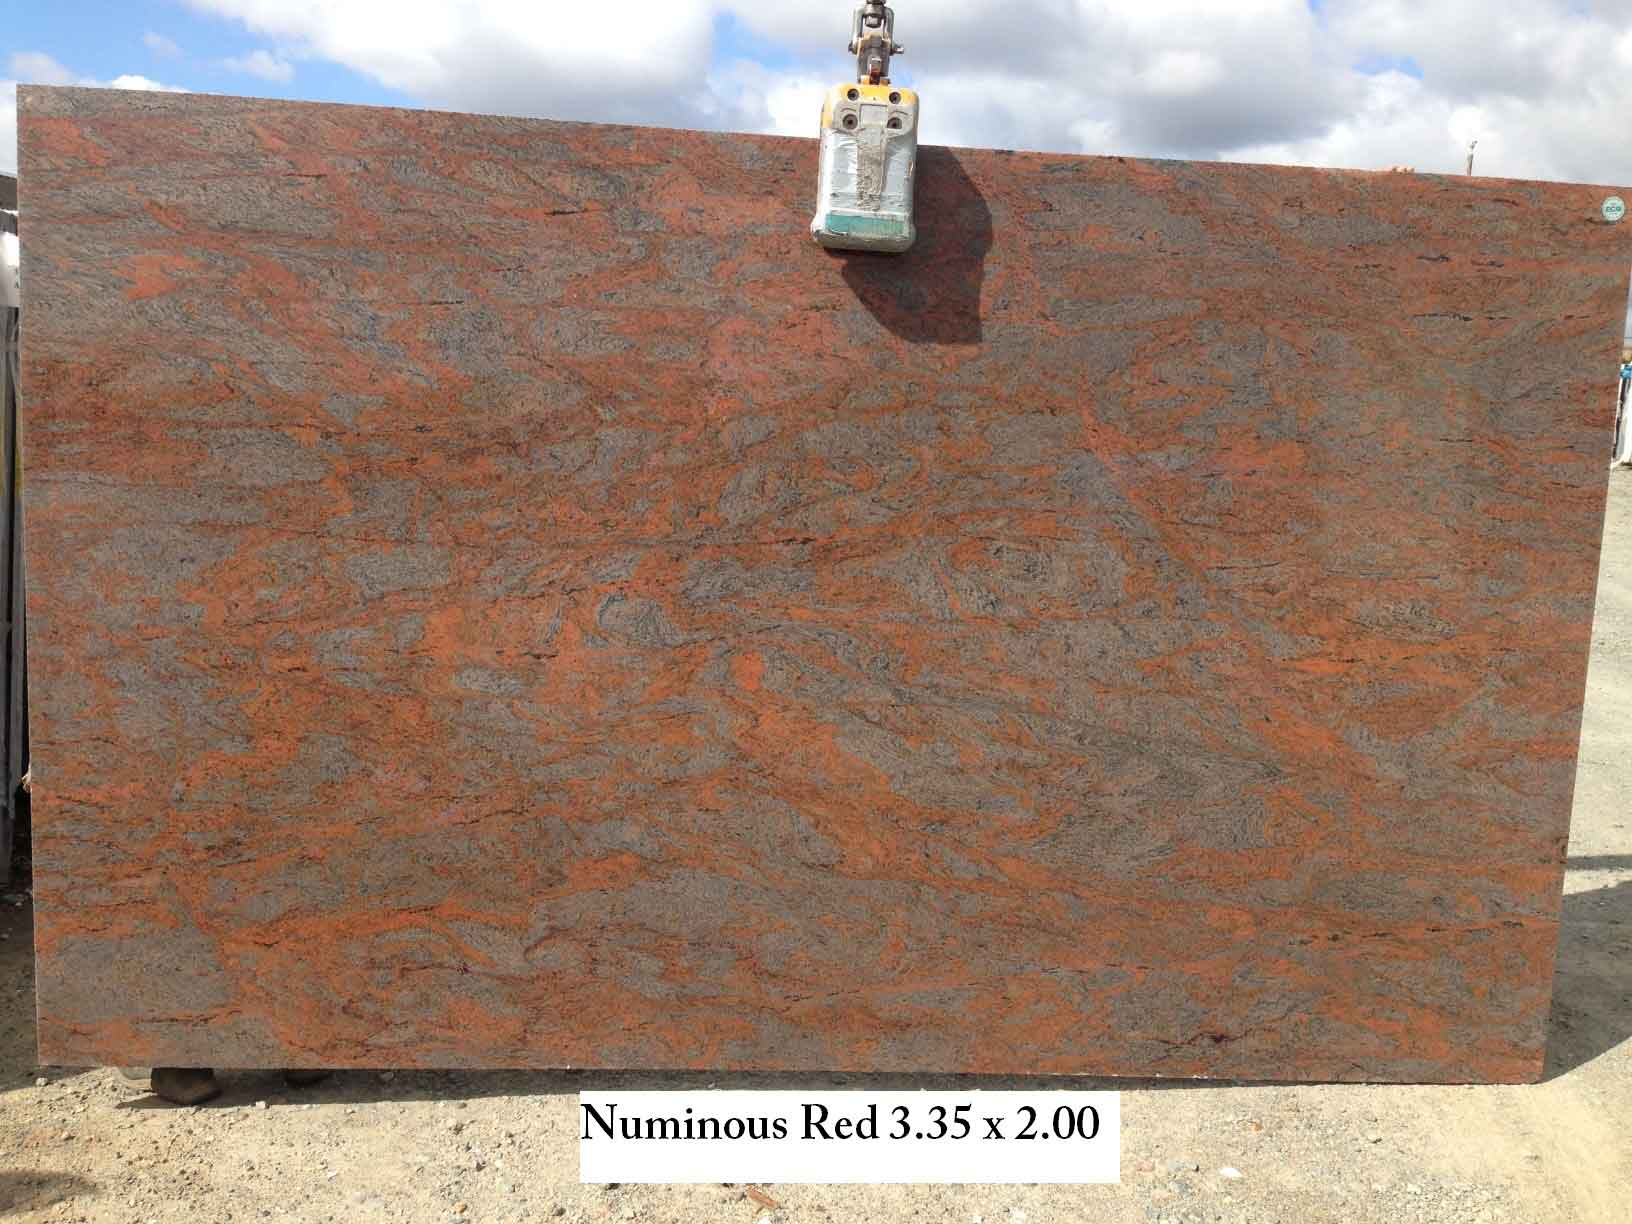 Numinous Red Granite